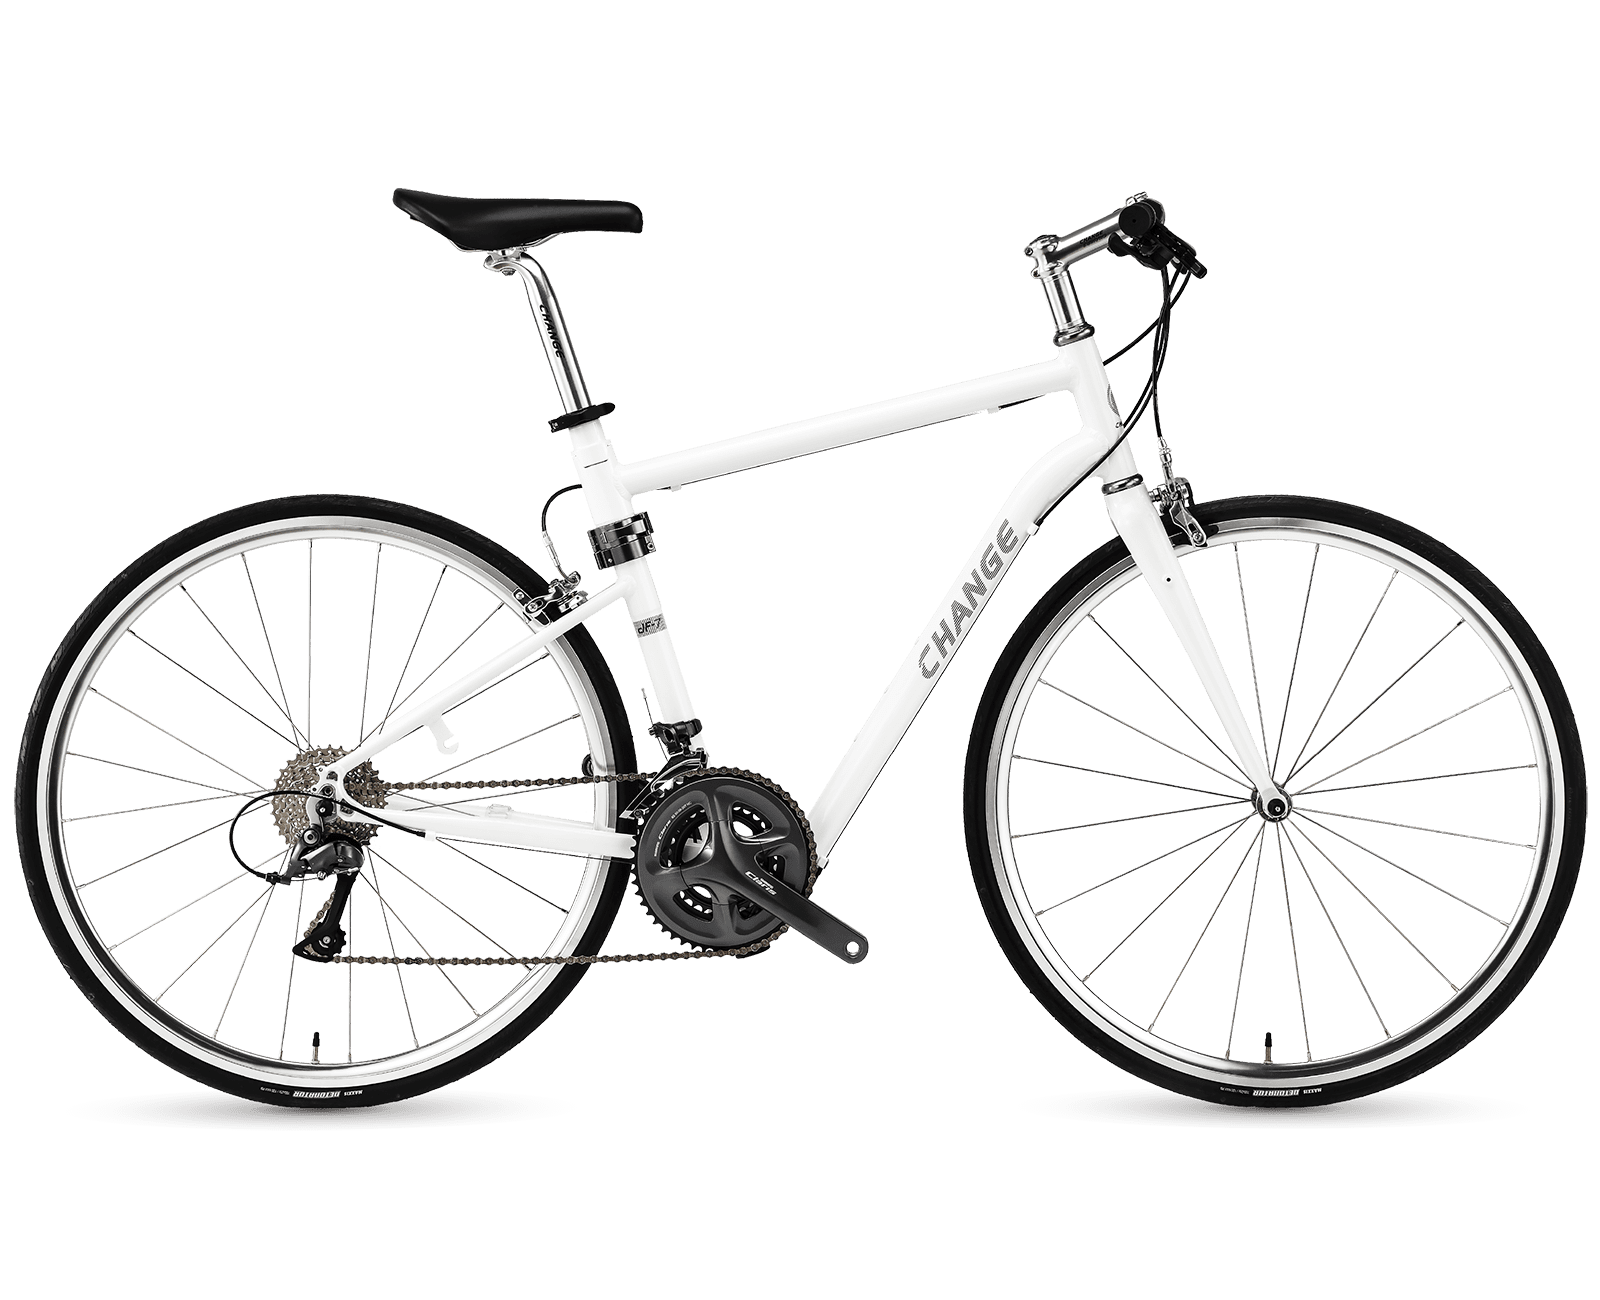 700c folding bike changebike df-702w